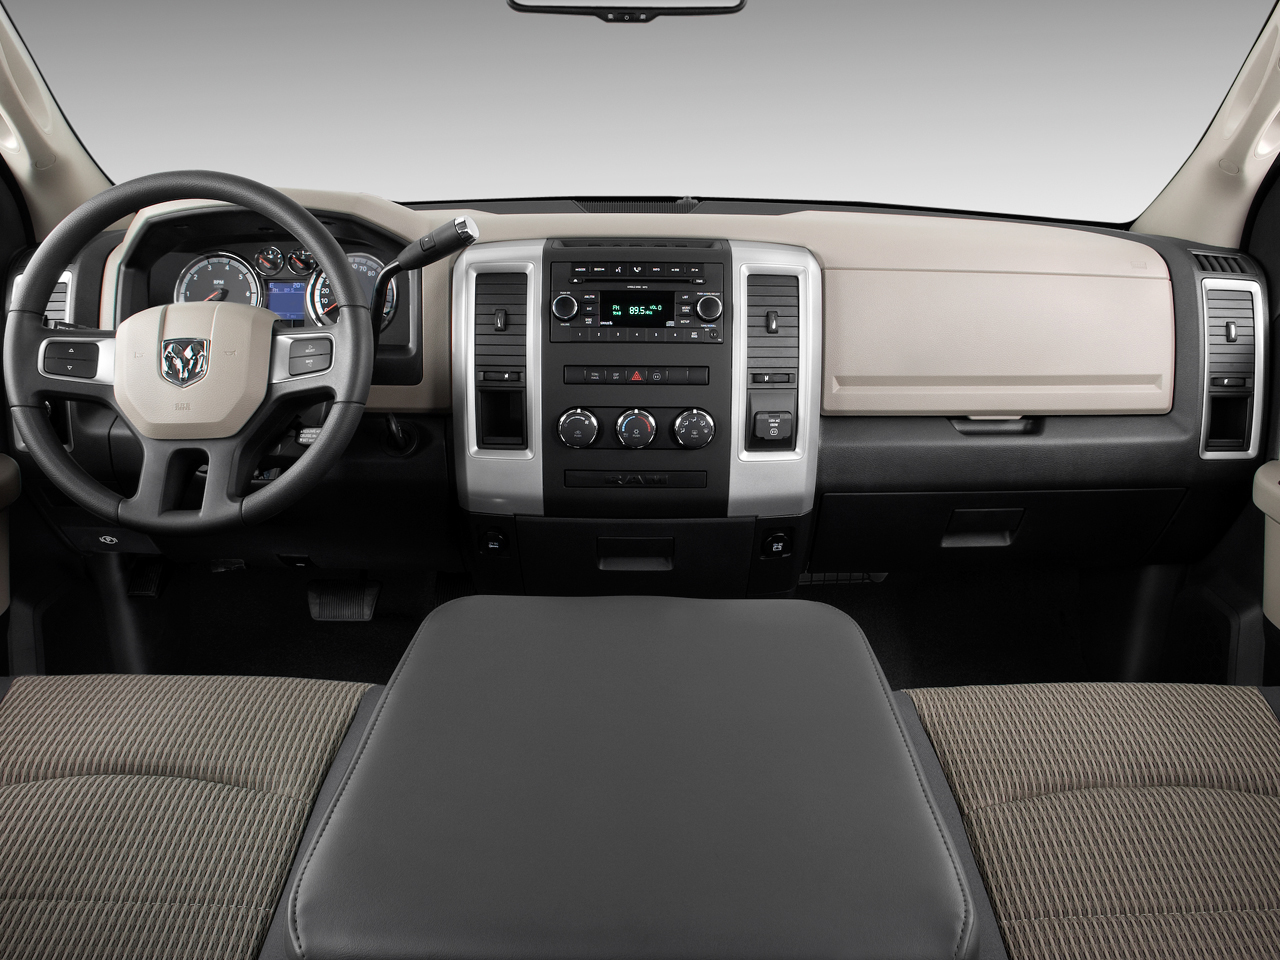 2009 Dodge Ram Pricing Starts At 22170 Dash Cover 1500 2003 49 78